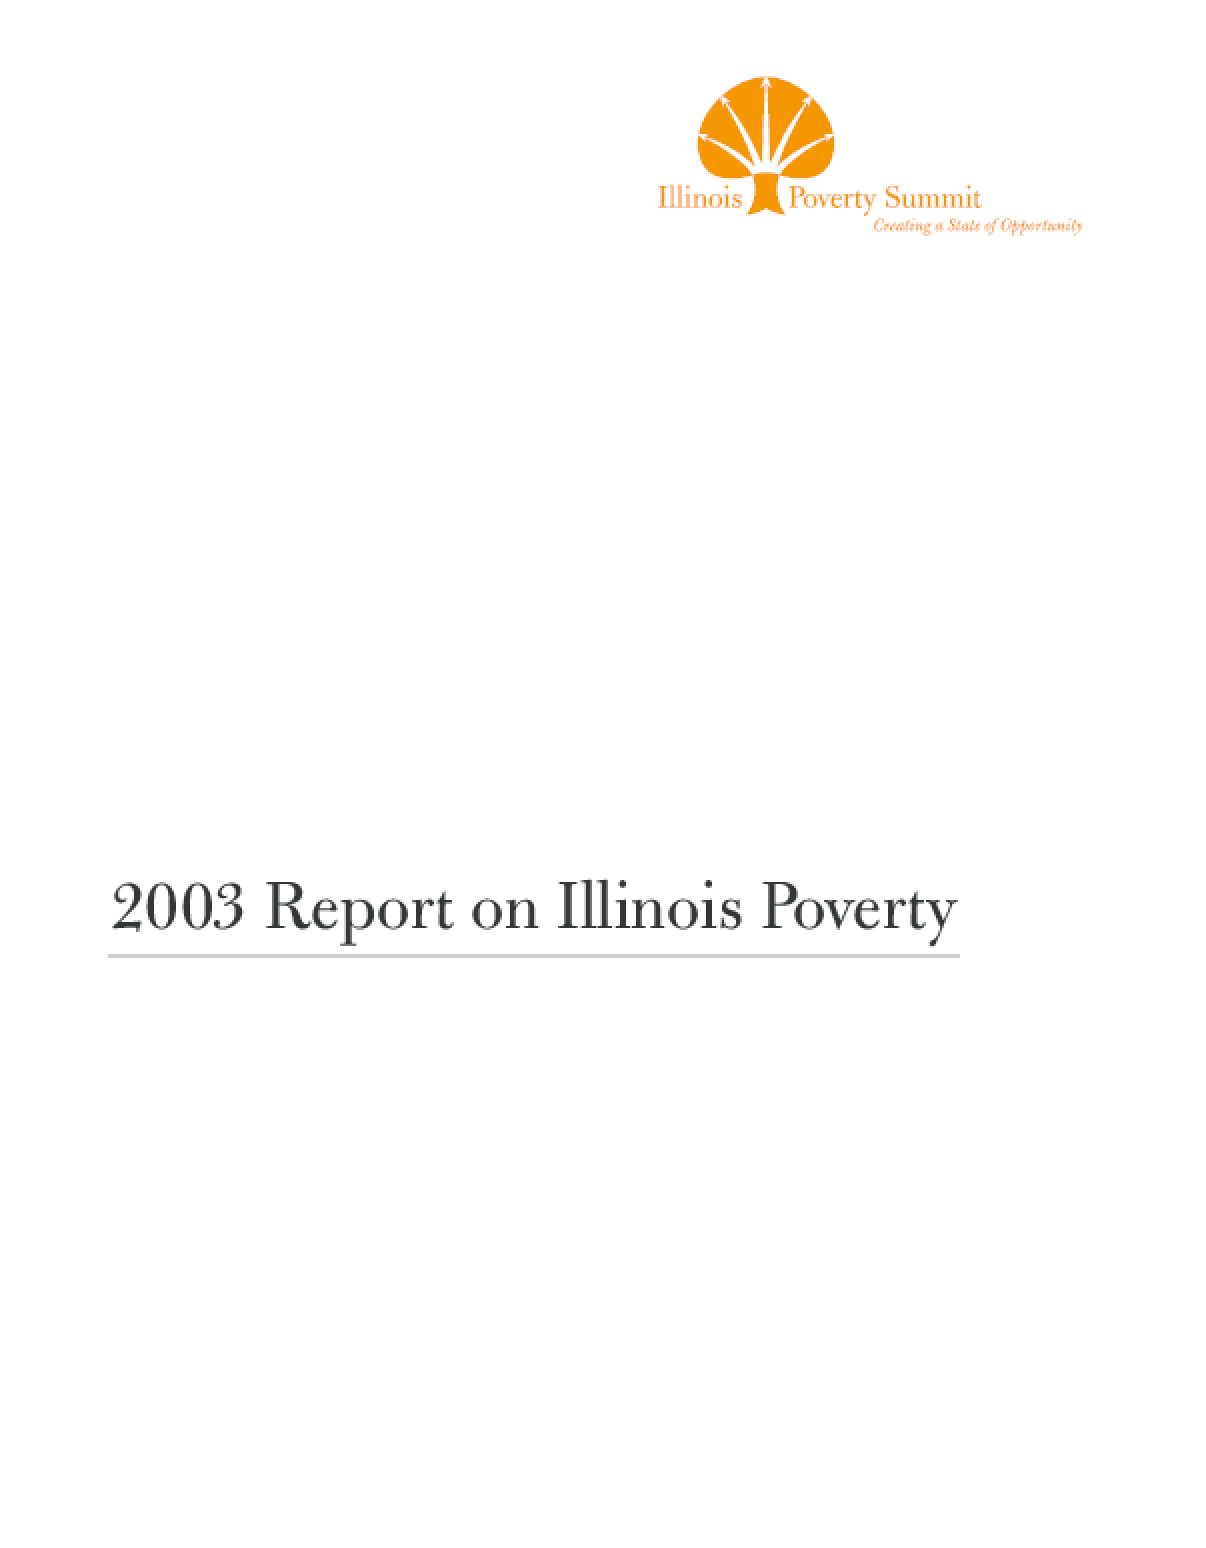 2003 Report on Illinois Poverty